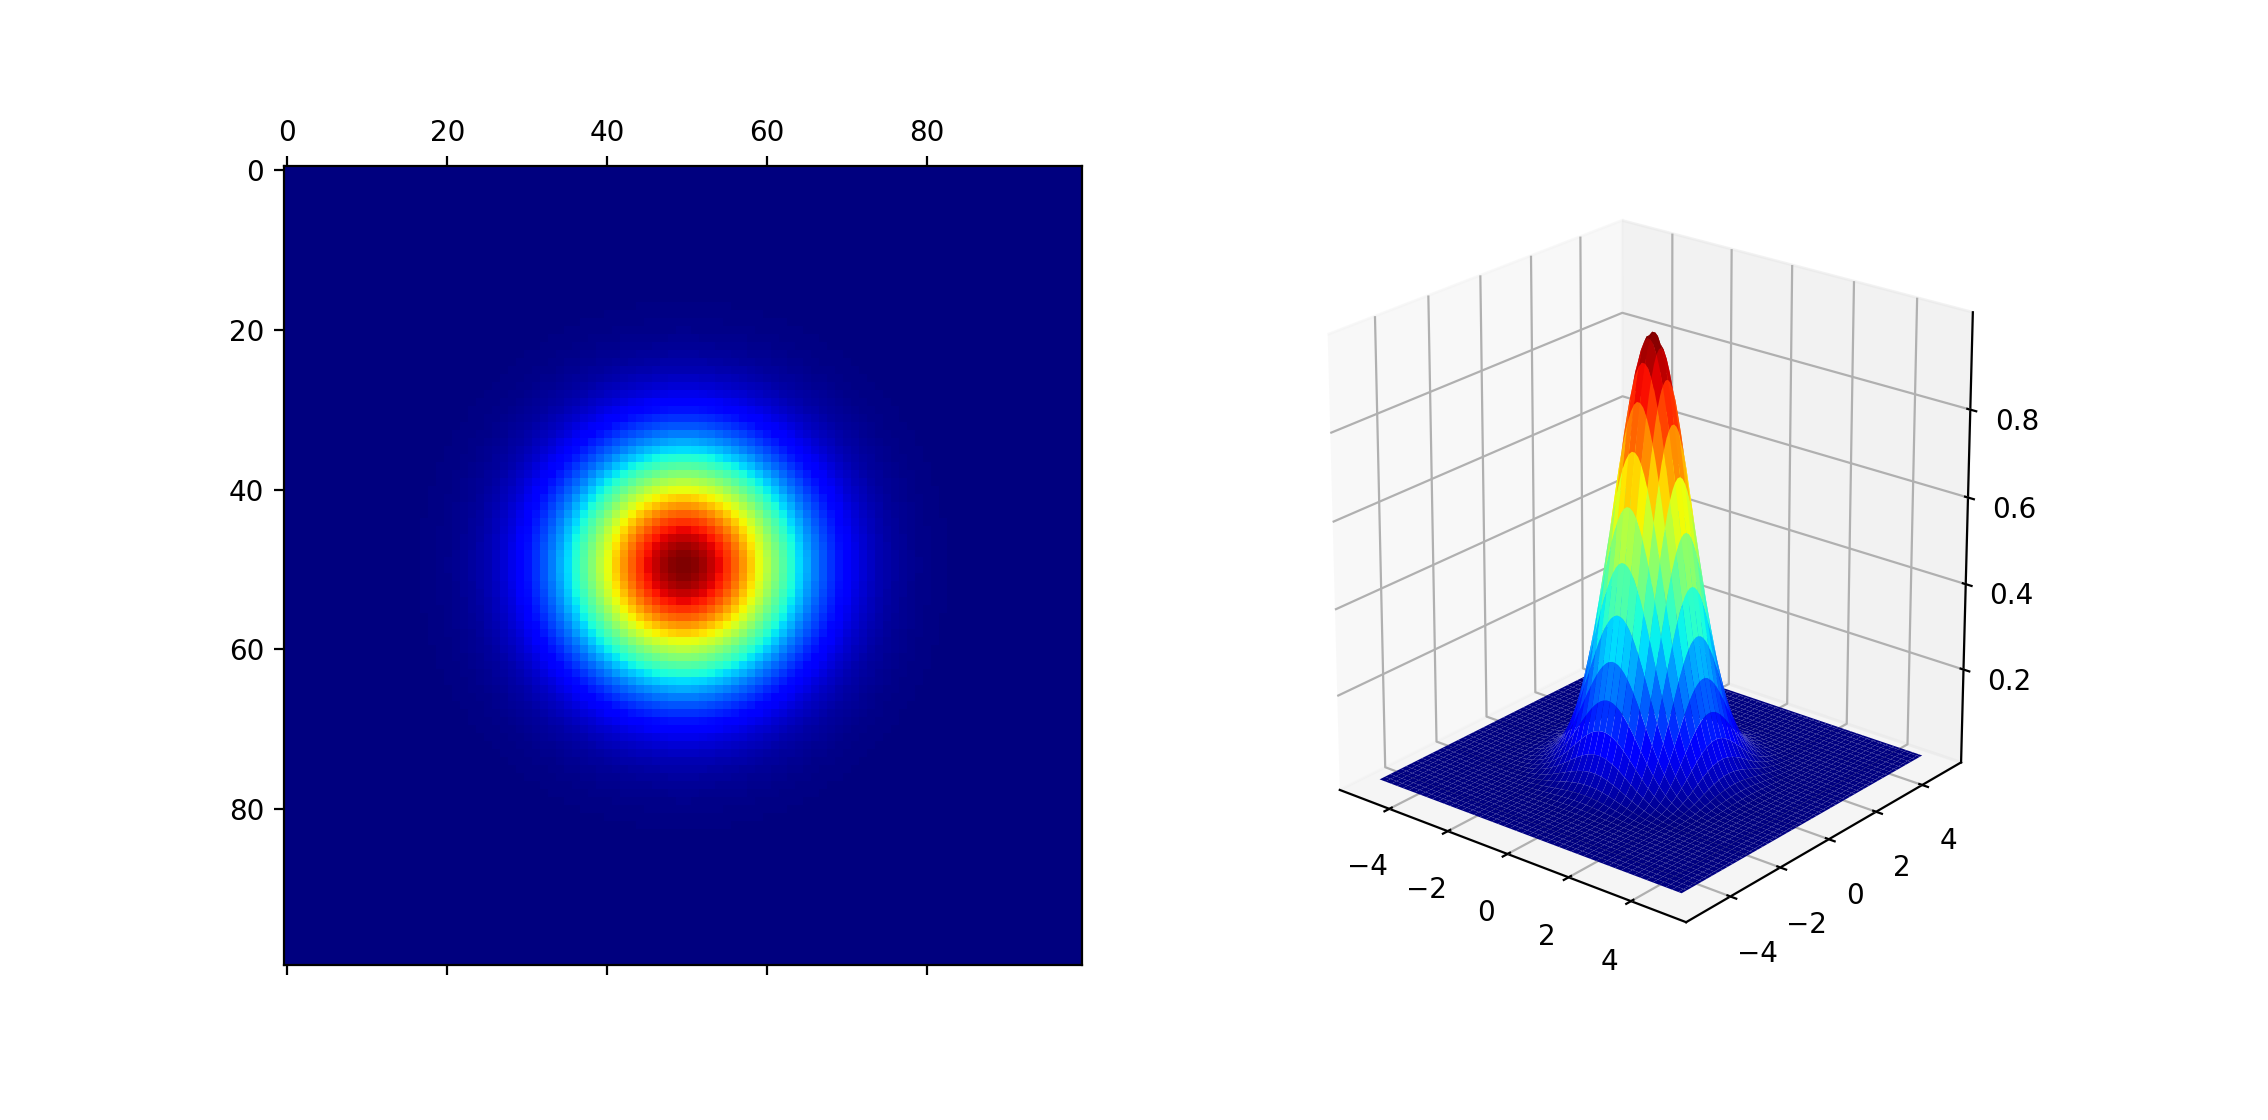 Plots of a 2D Gaussian Function